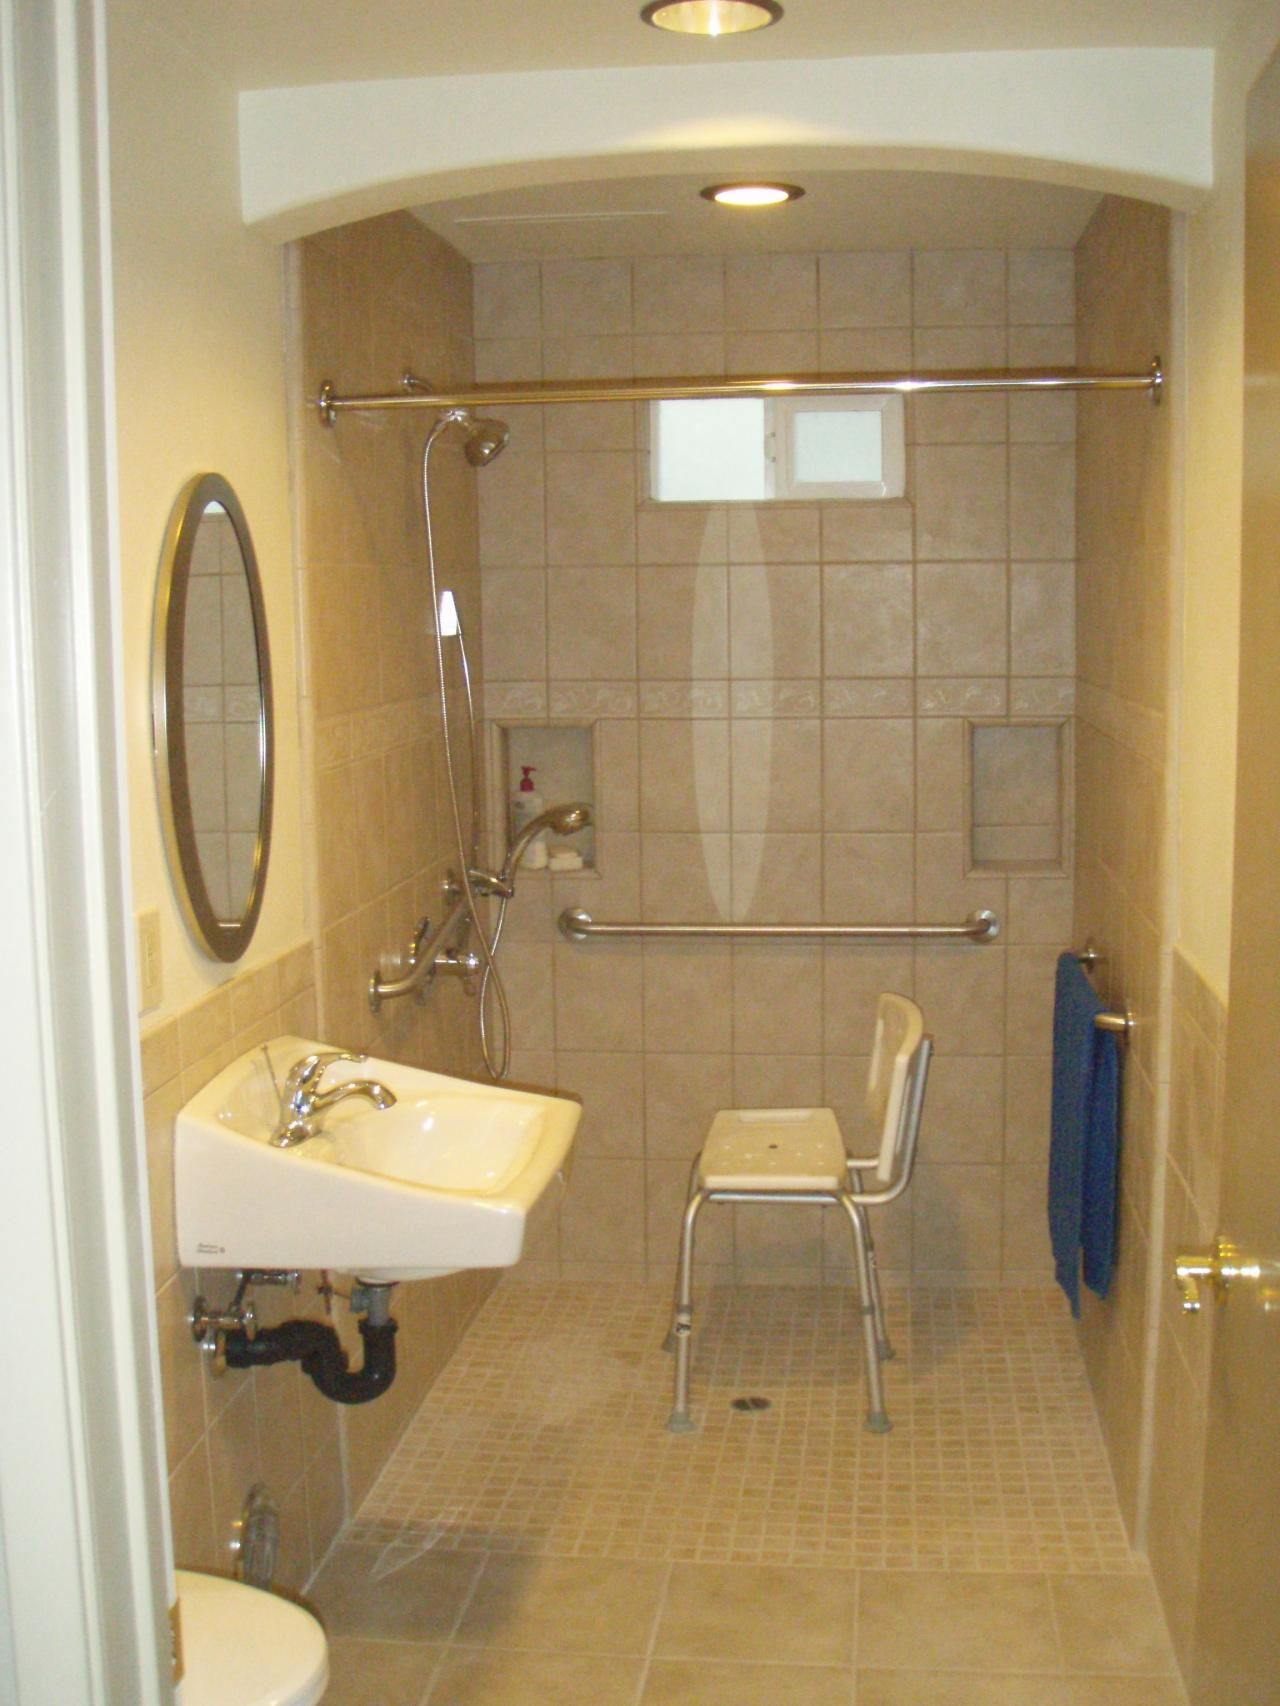 Handicapped bathroom accessories - Bathroom Remodels For Handicapped Handicapped Bathroom Ms Hayashi Torrance 11 09